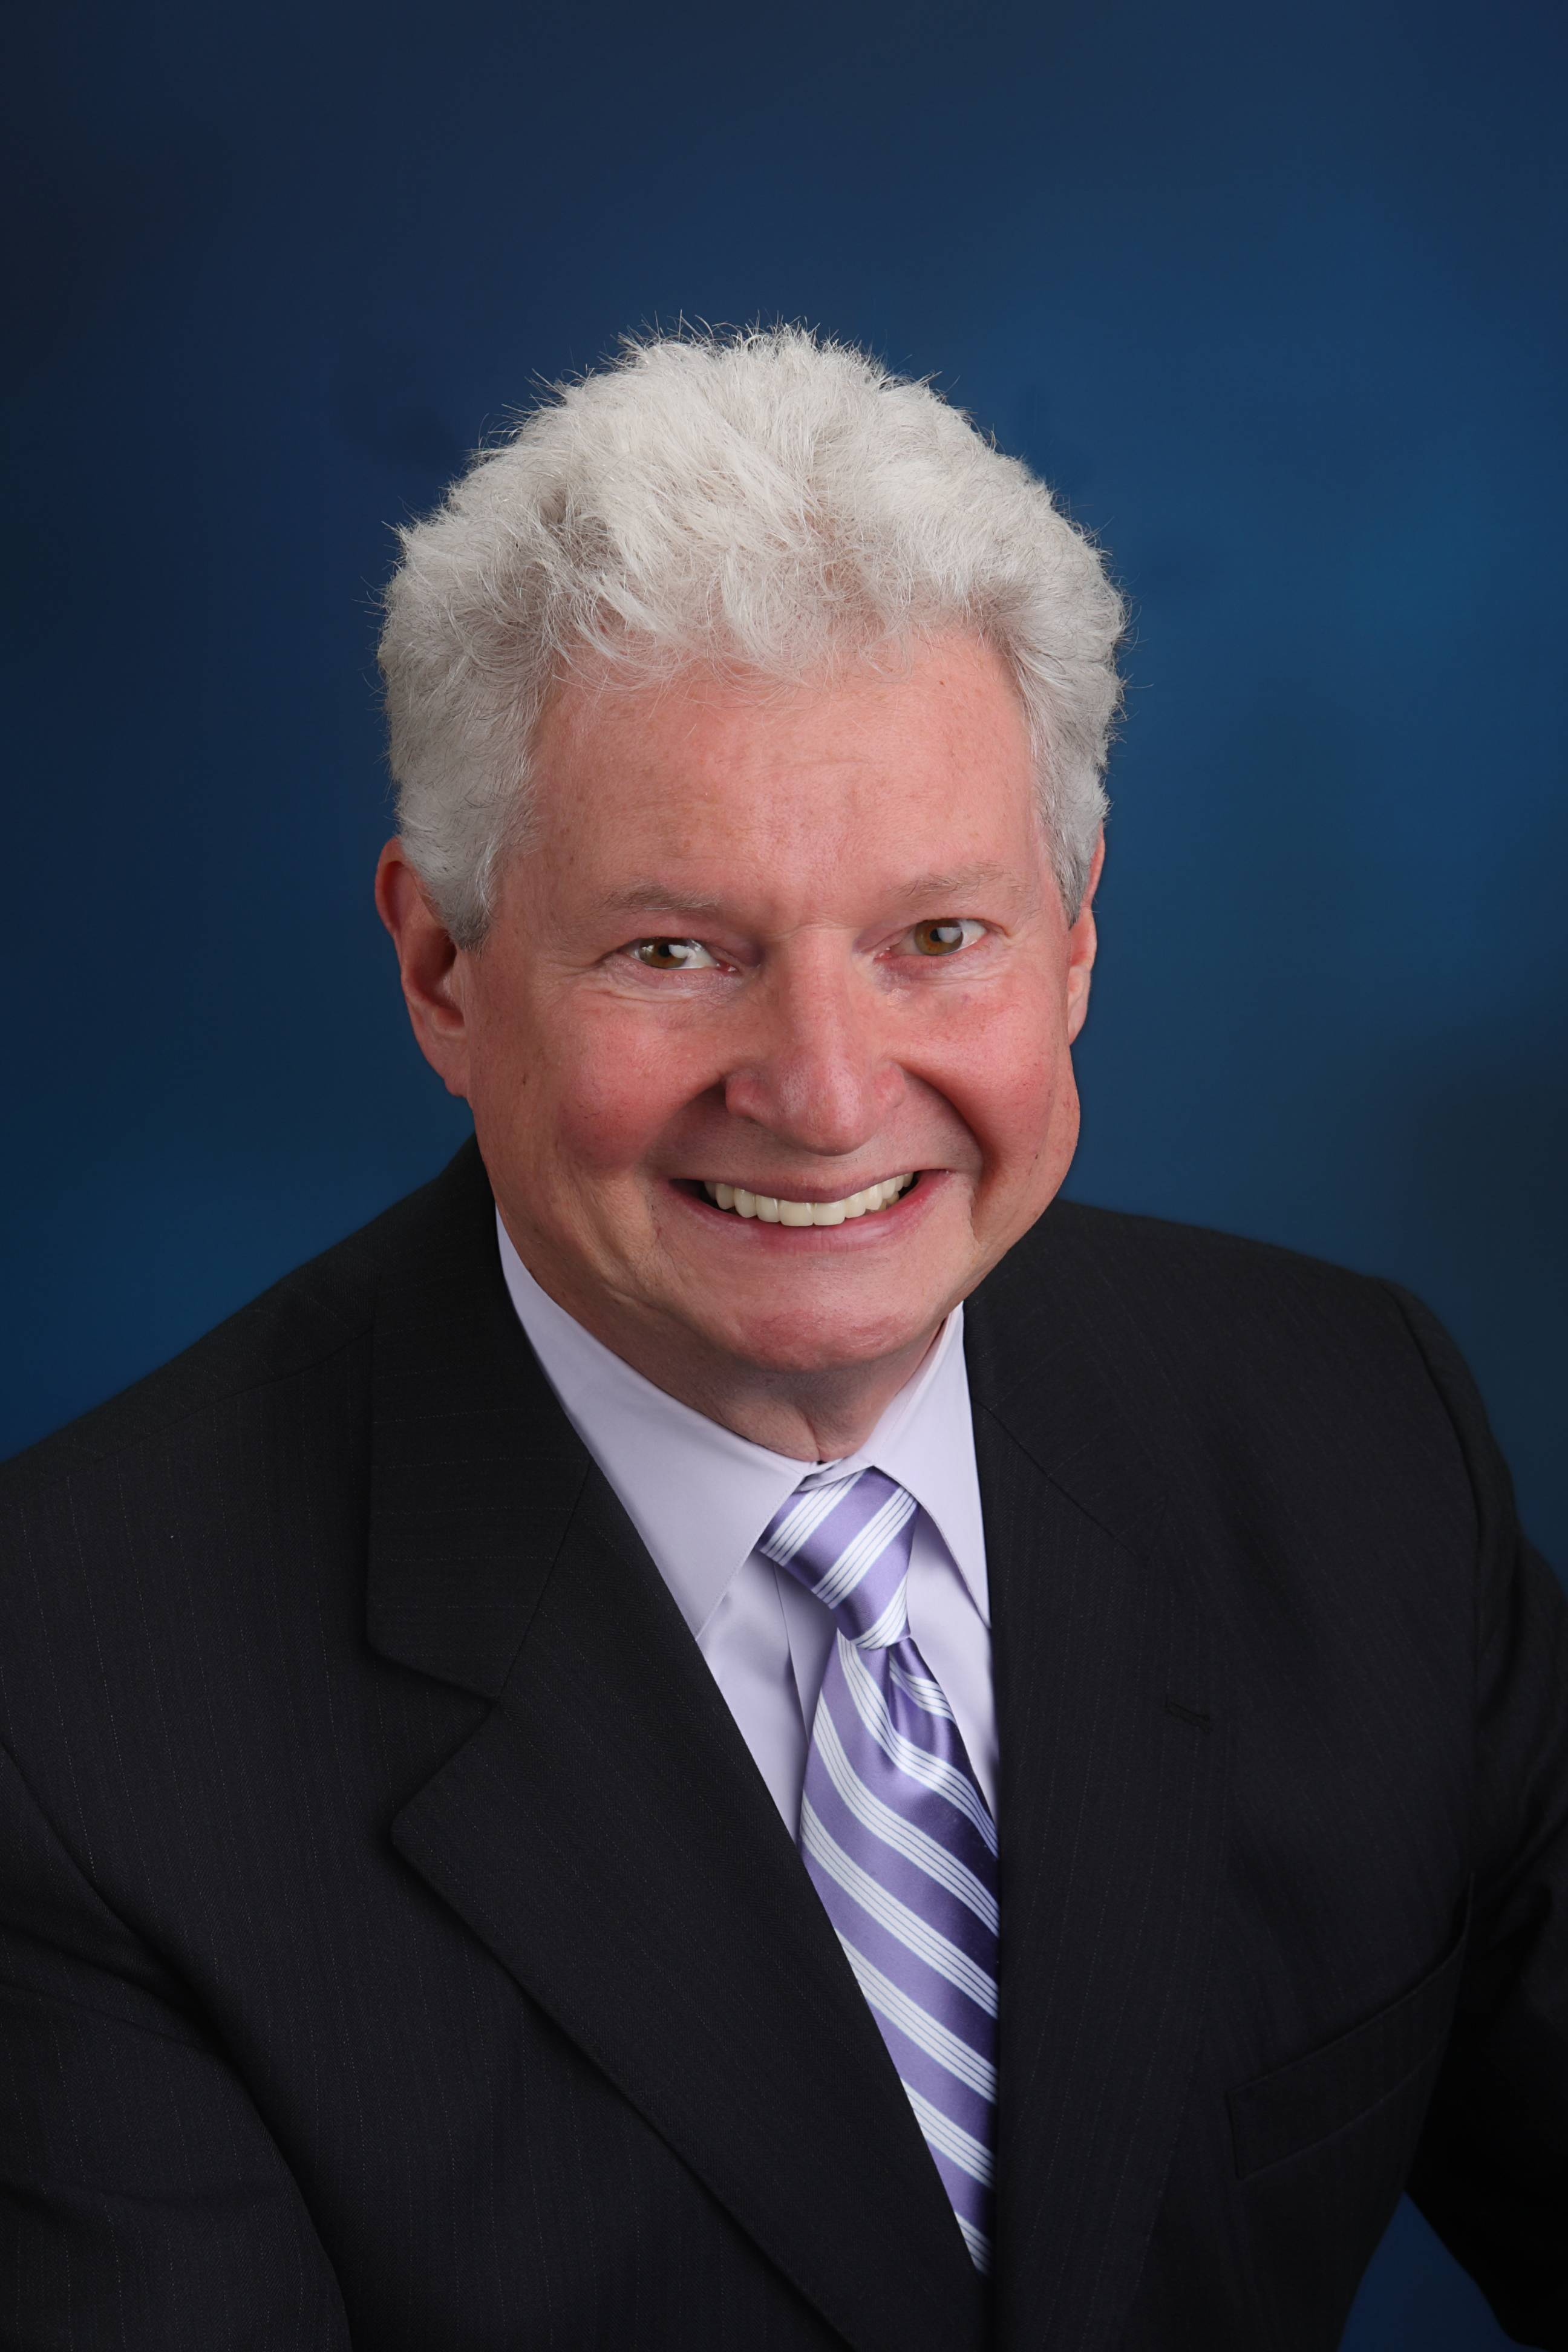 Mike Reilly, running for Naperville Park Board (4-year Terms)